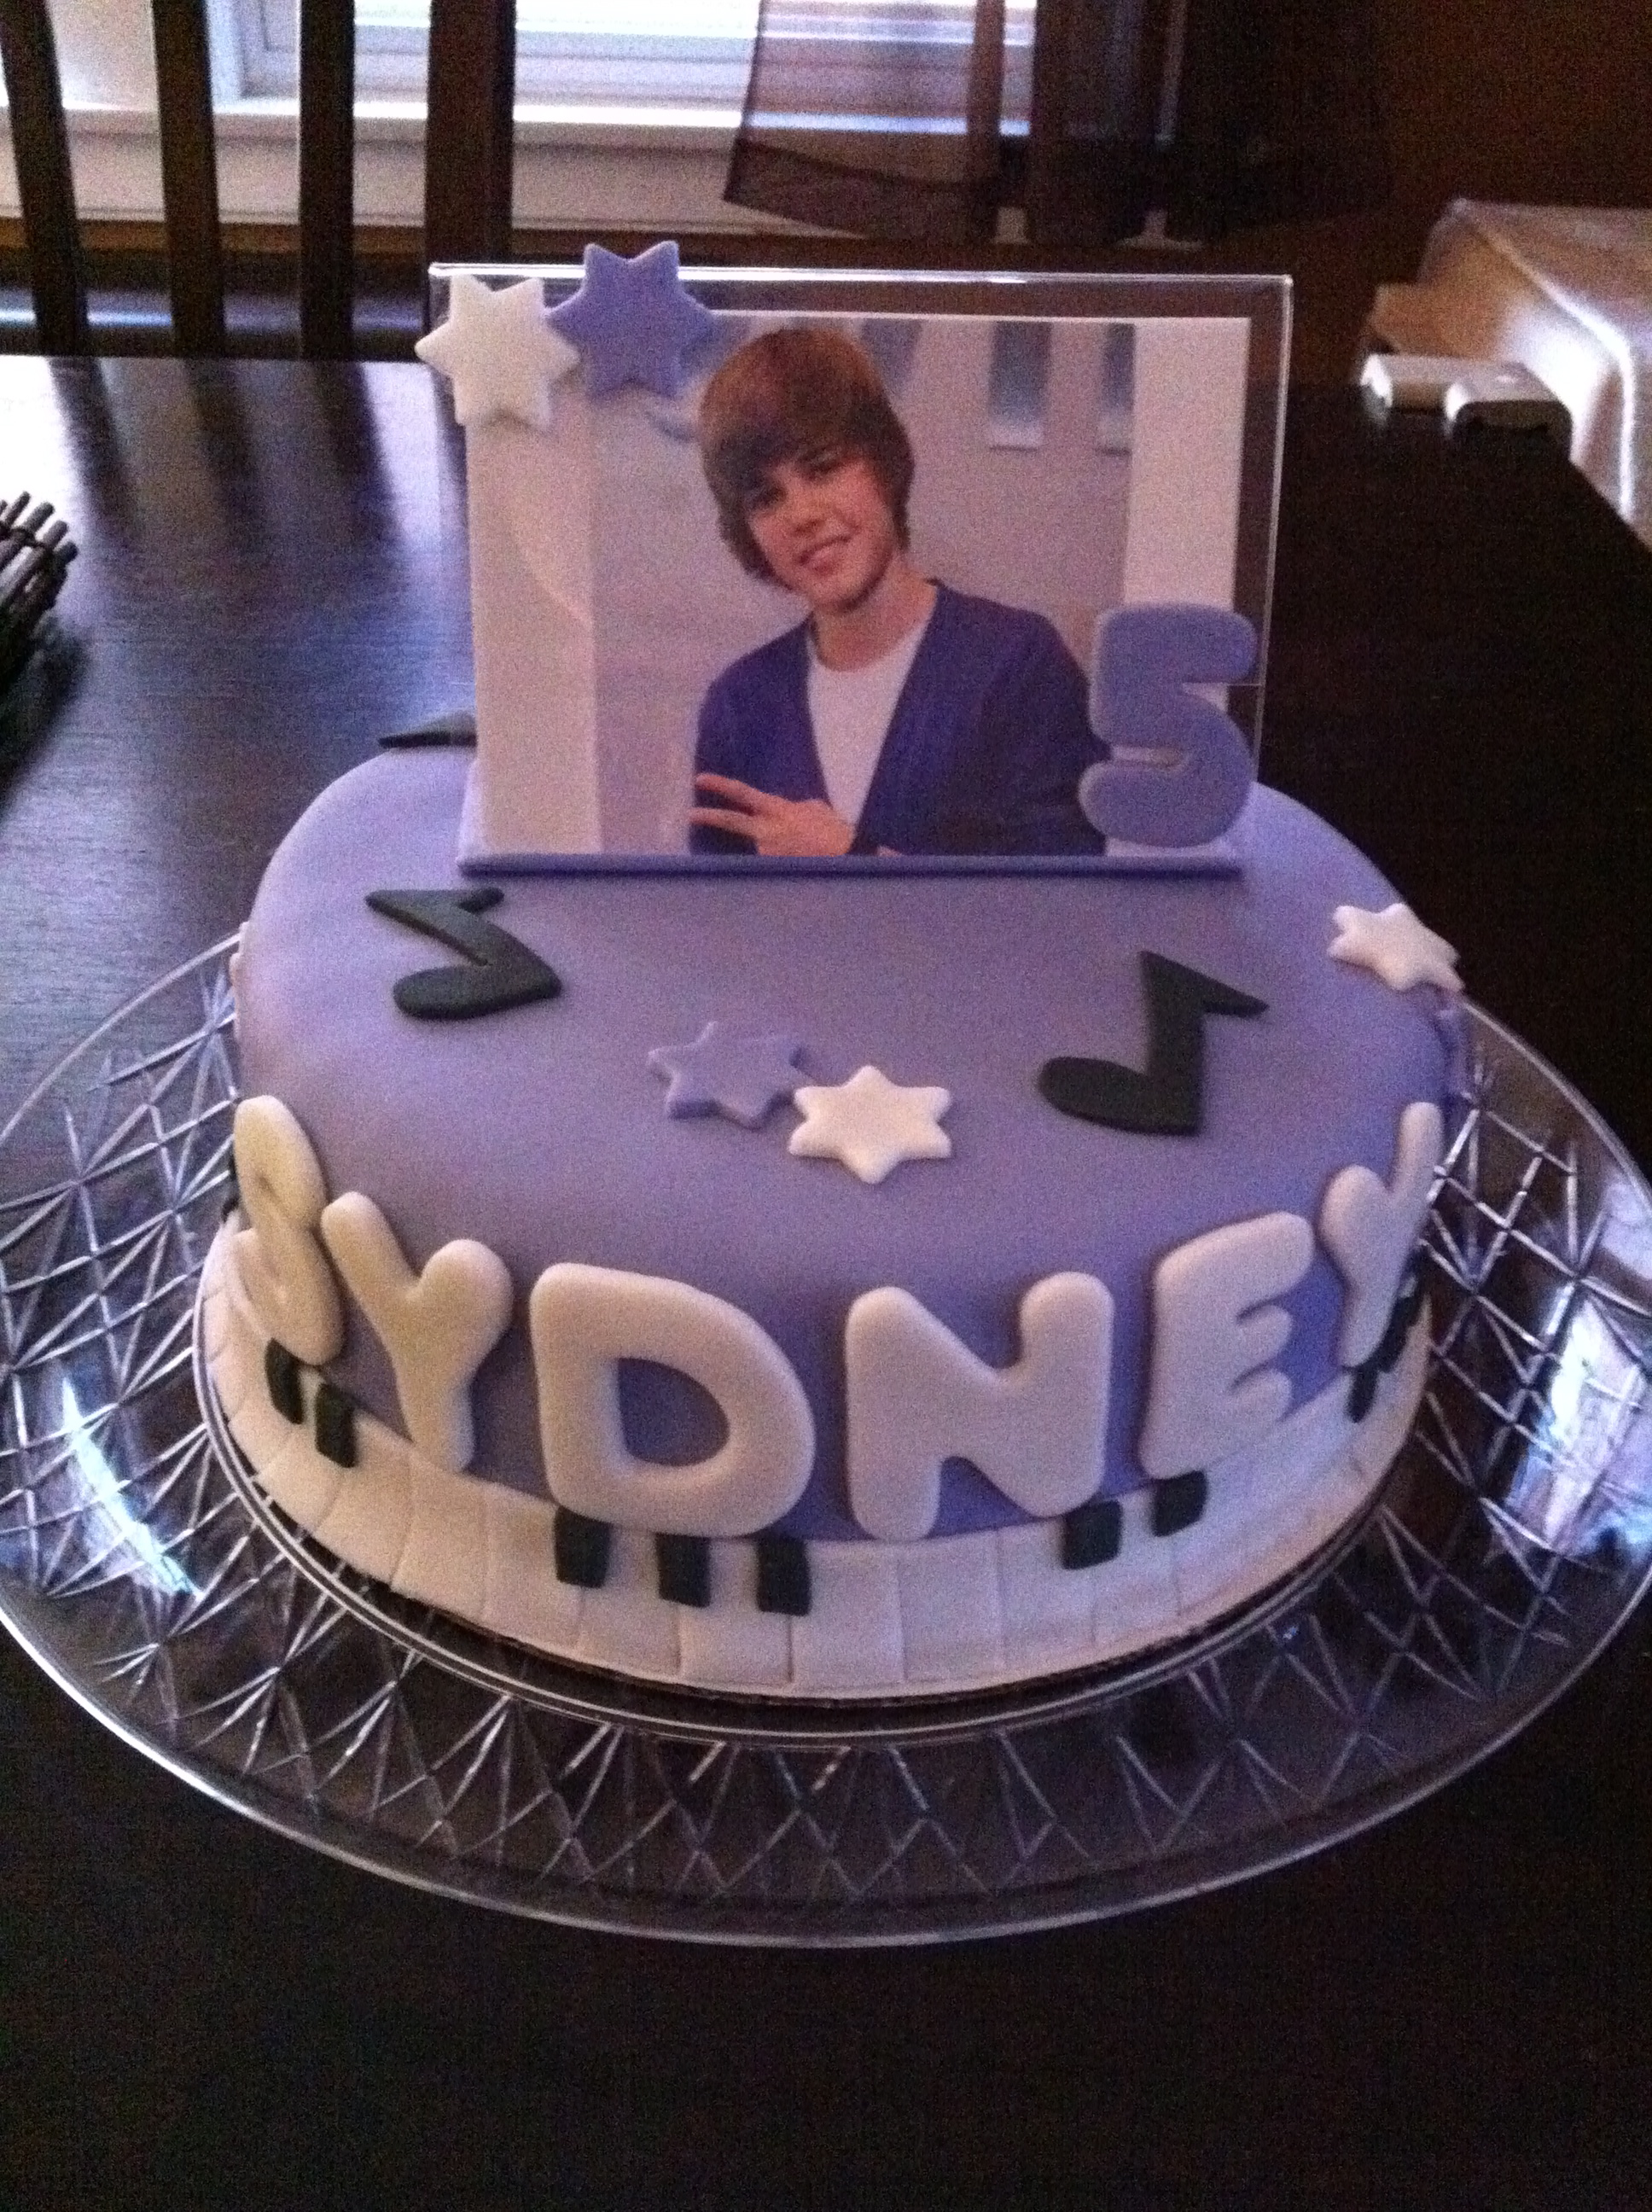 Stupendous Justin Bieber Cakes By Cathy Chicago Funny Birthday Cards Online Elaedamsfinfo